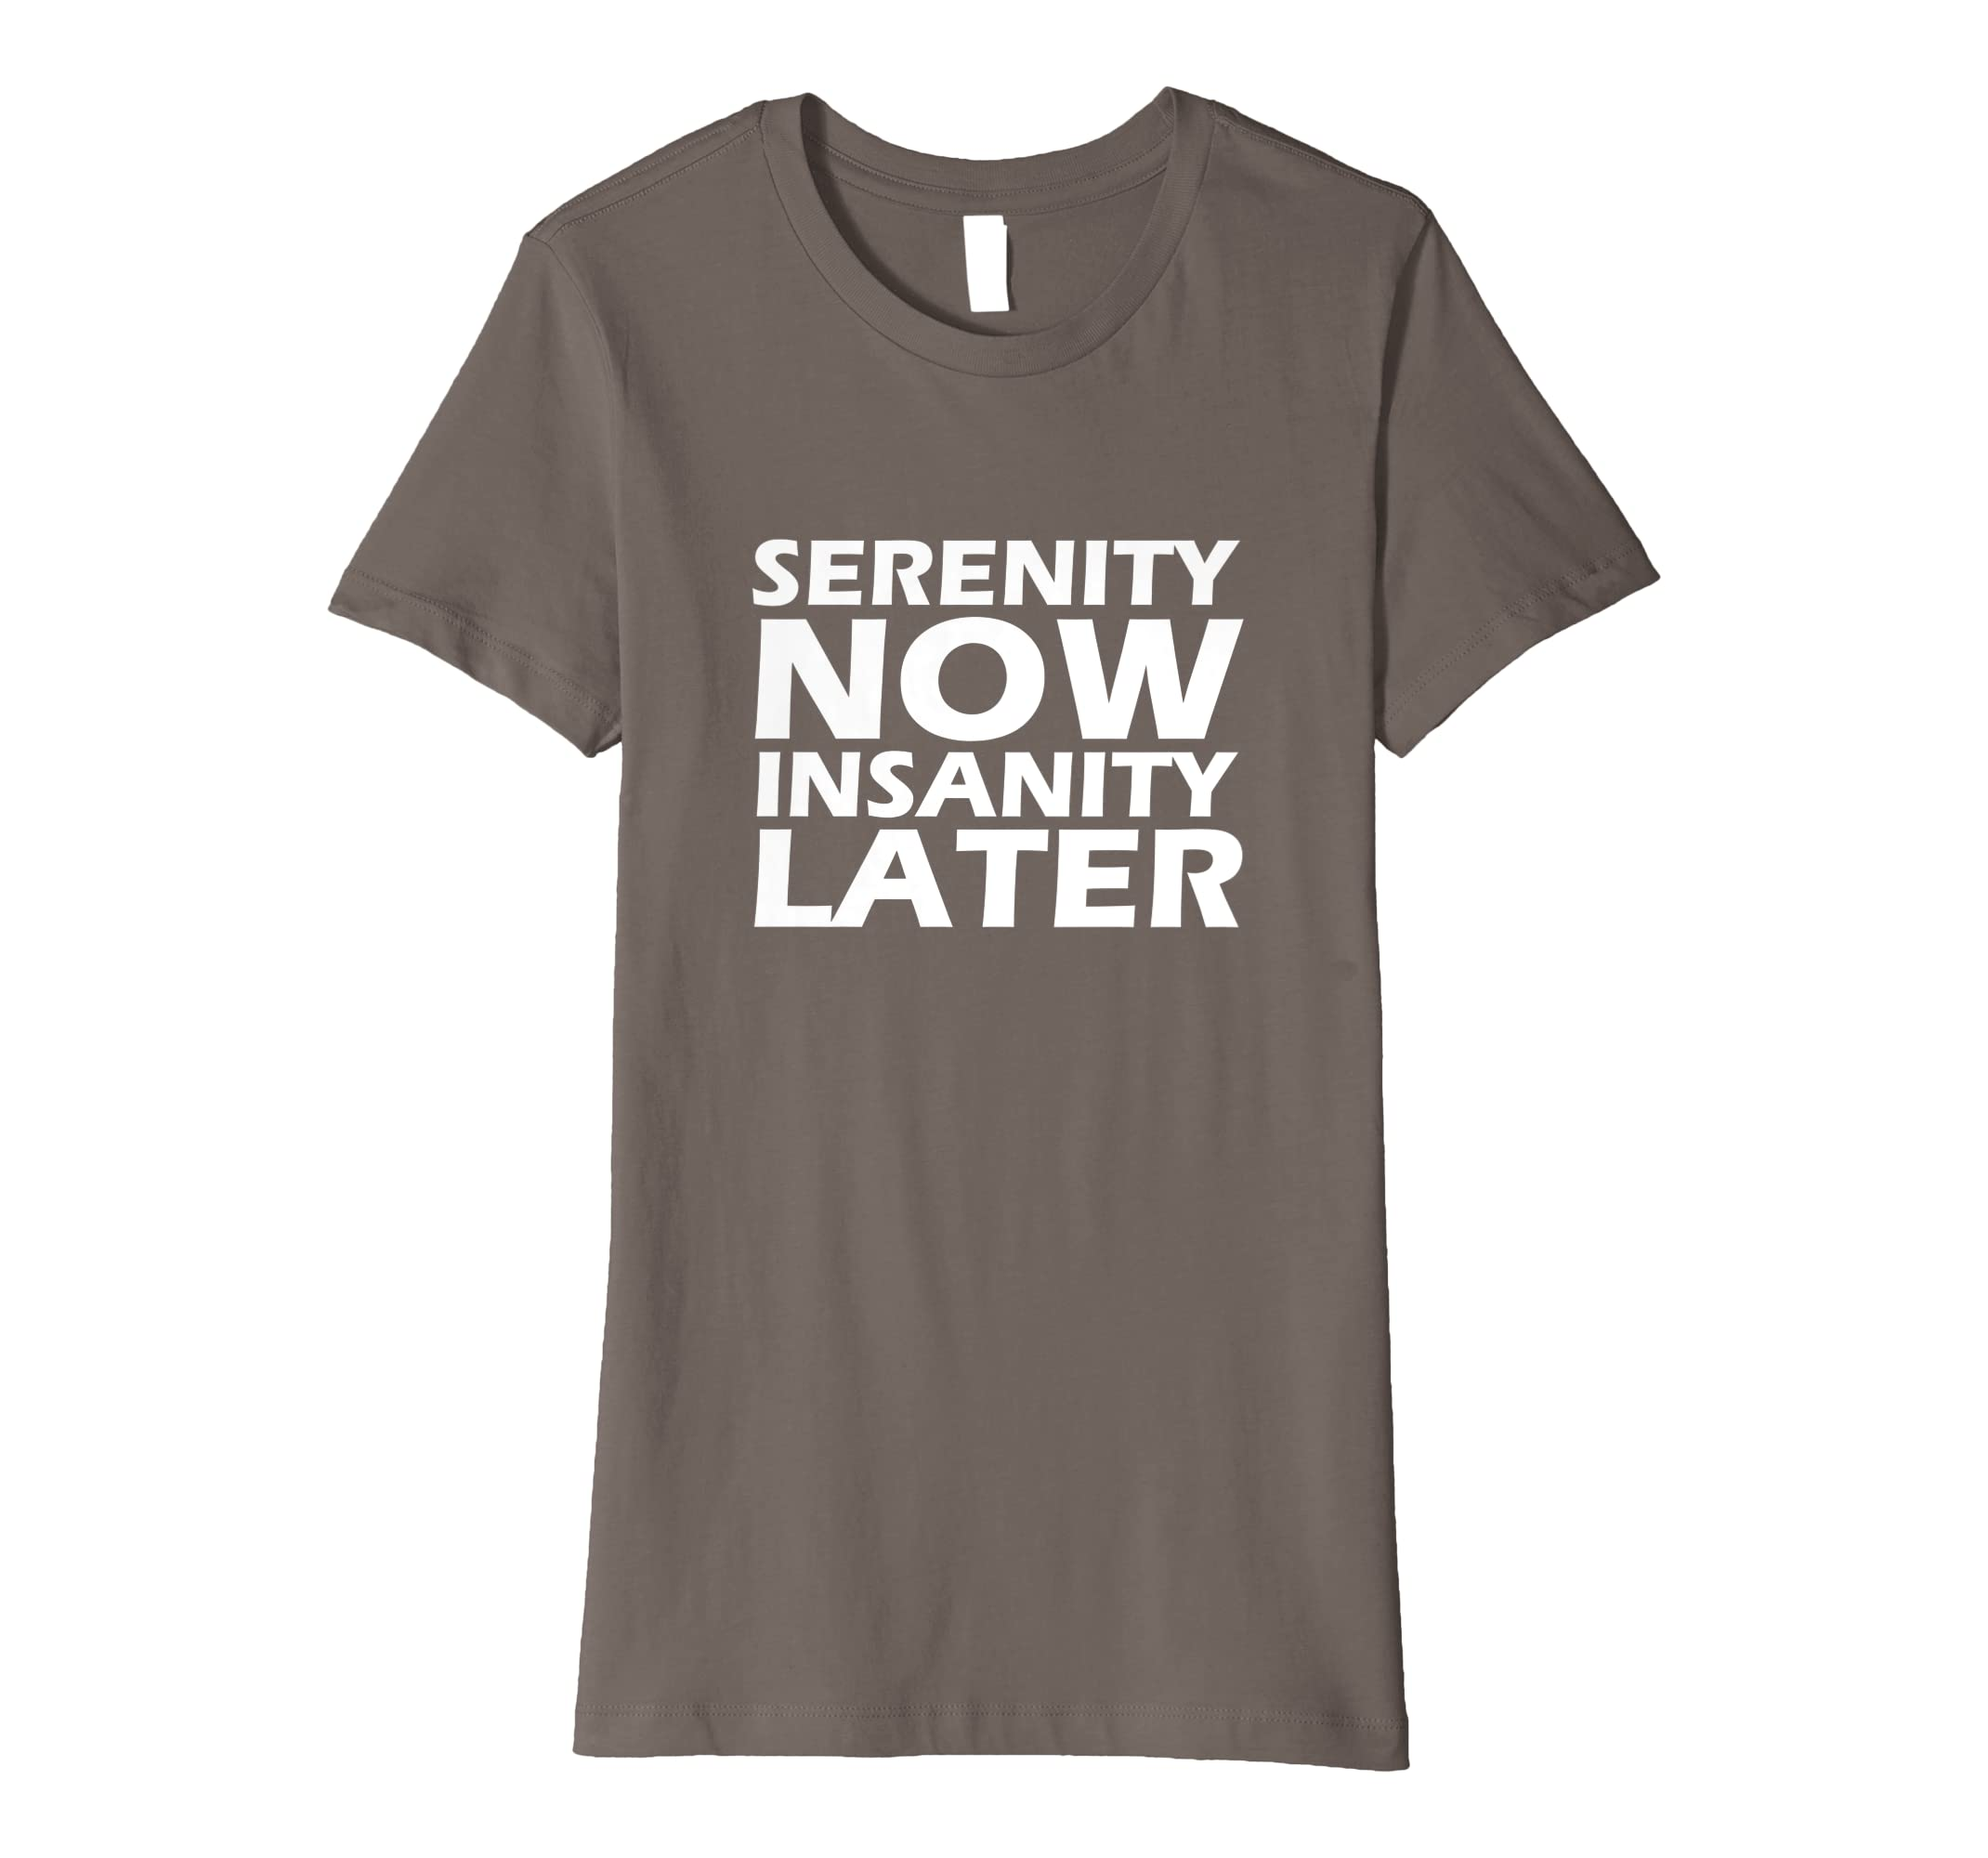 4a9838f2 10 Funny T Shirt Sayings & Designs For Men